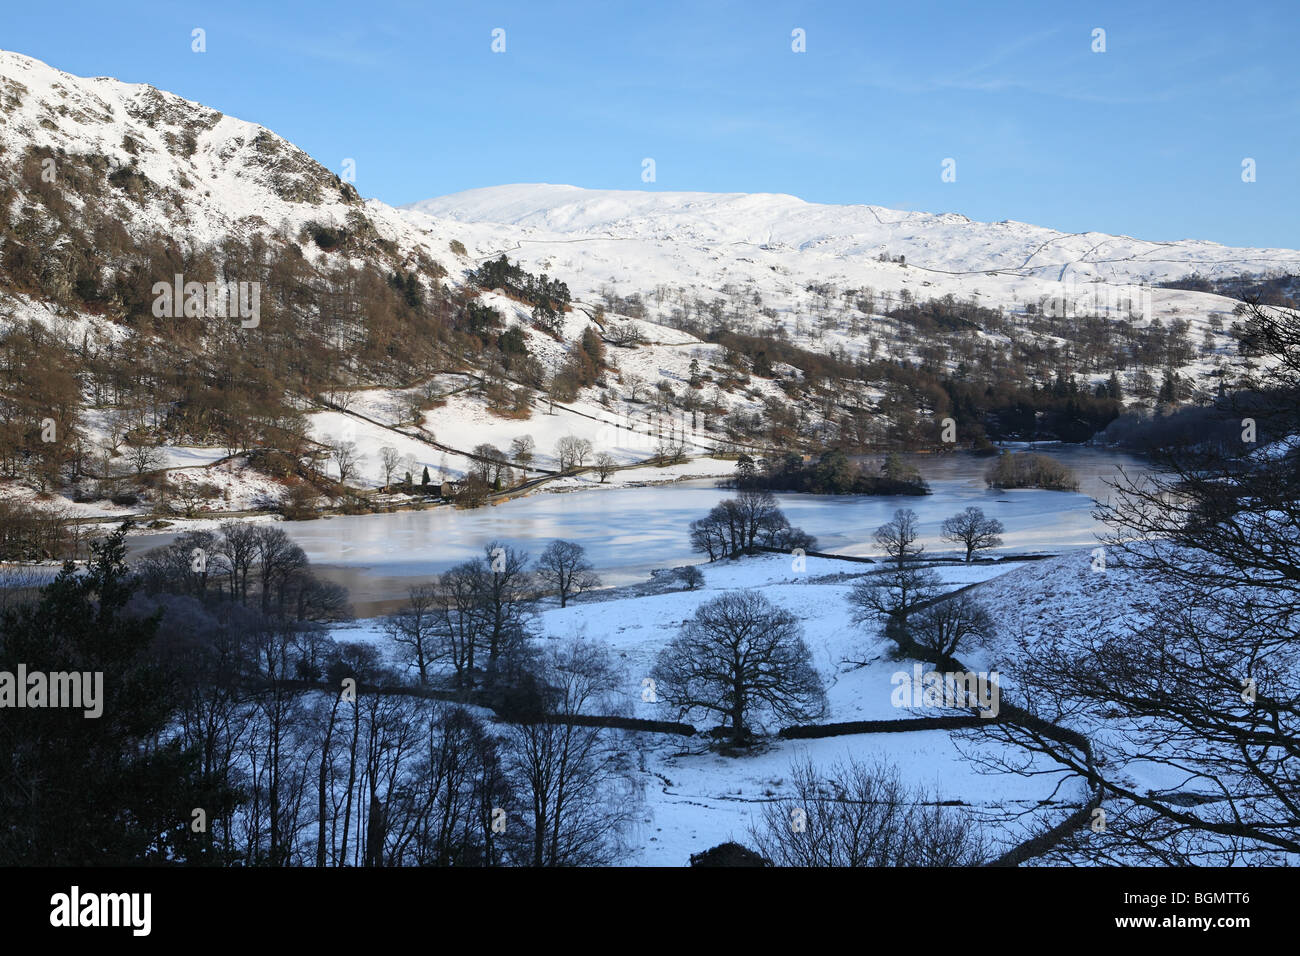 Rydal Water with snow clad mountains, Cumbria, UK - Stock Image